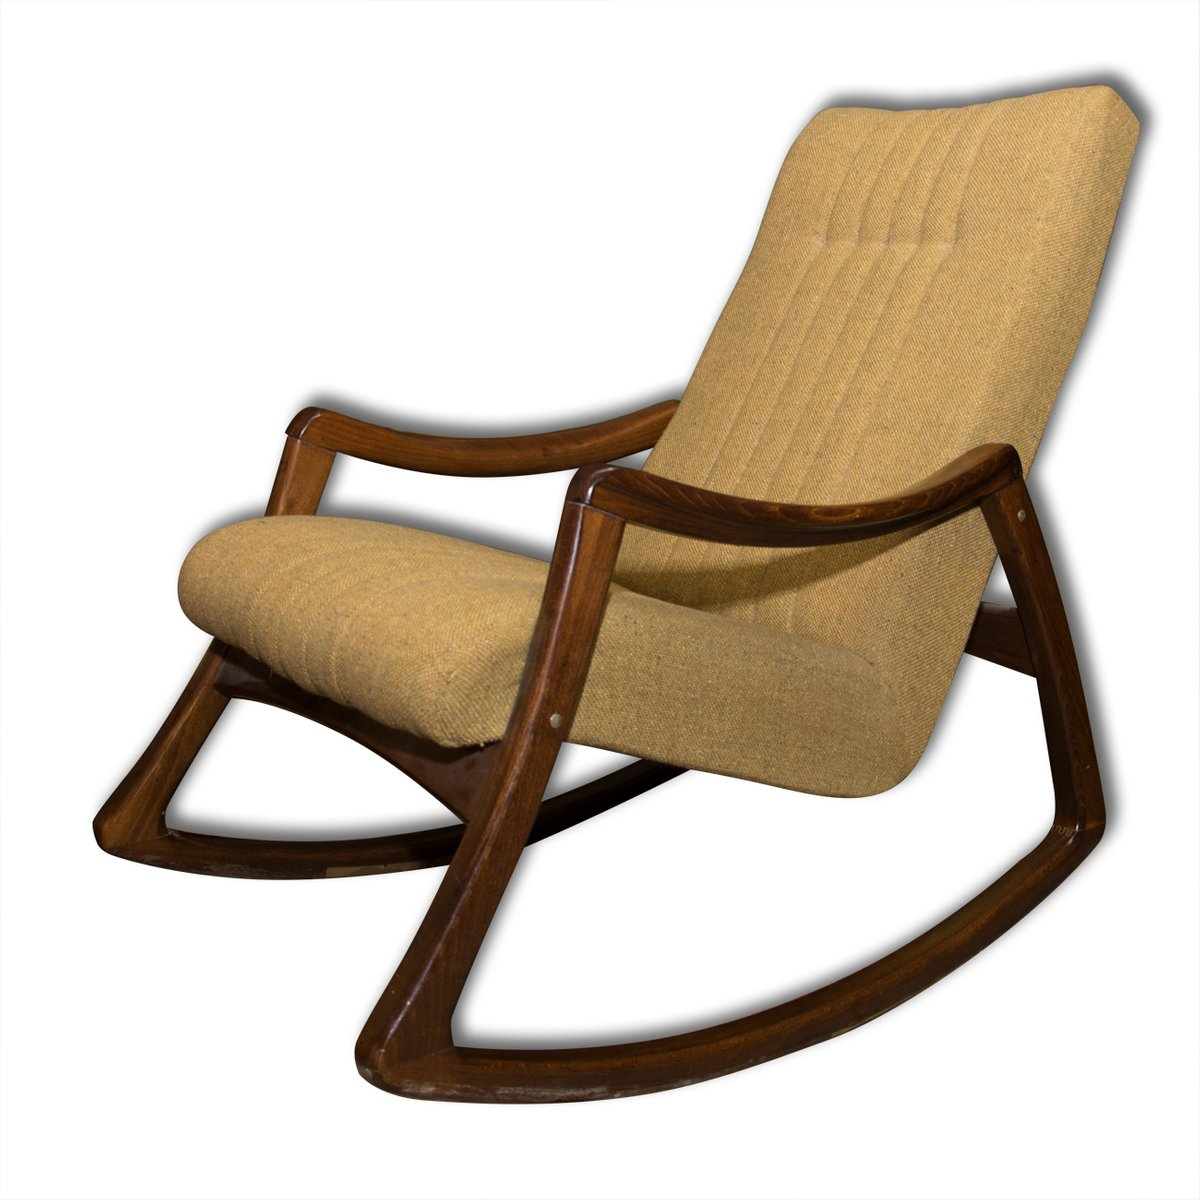 Vintage Czech Bentwood Rocking Chair From Ton 1970s For